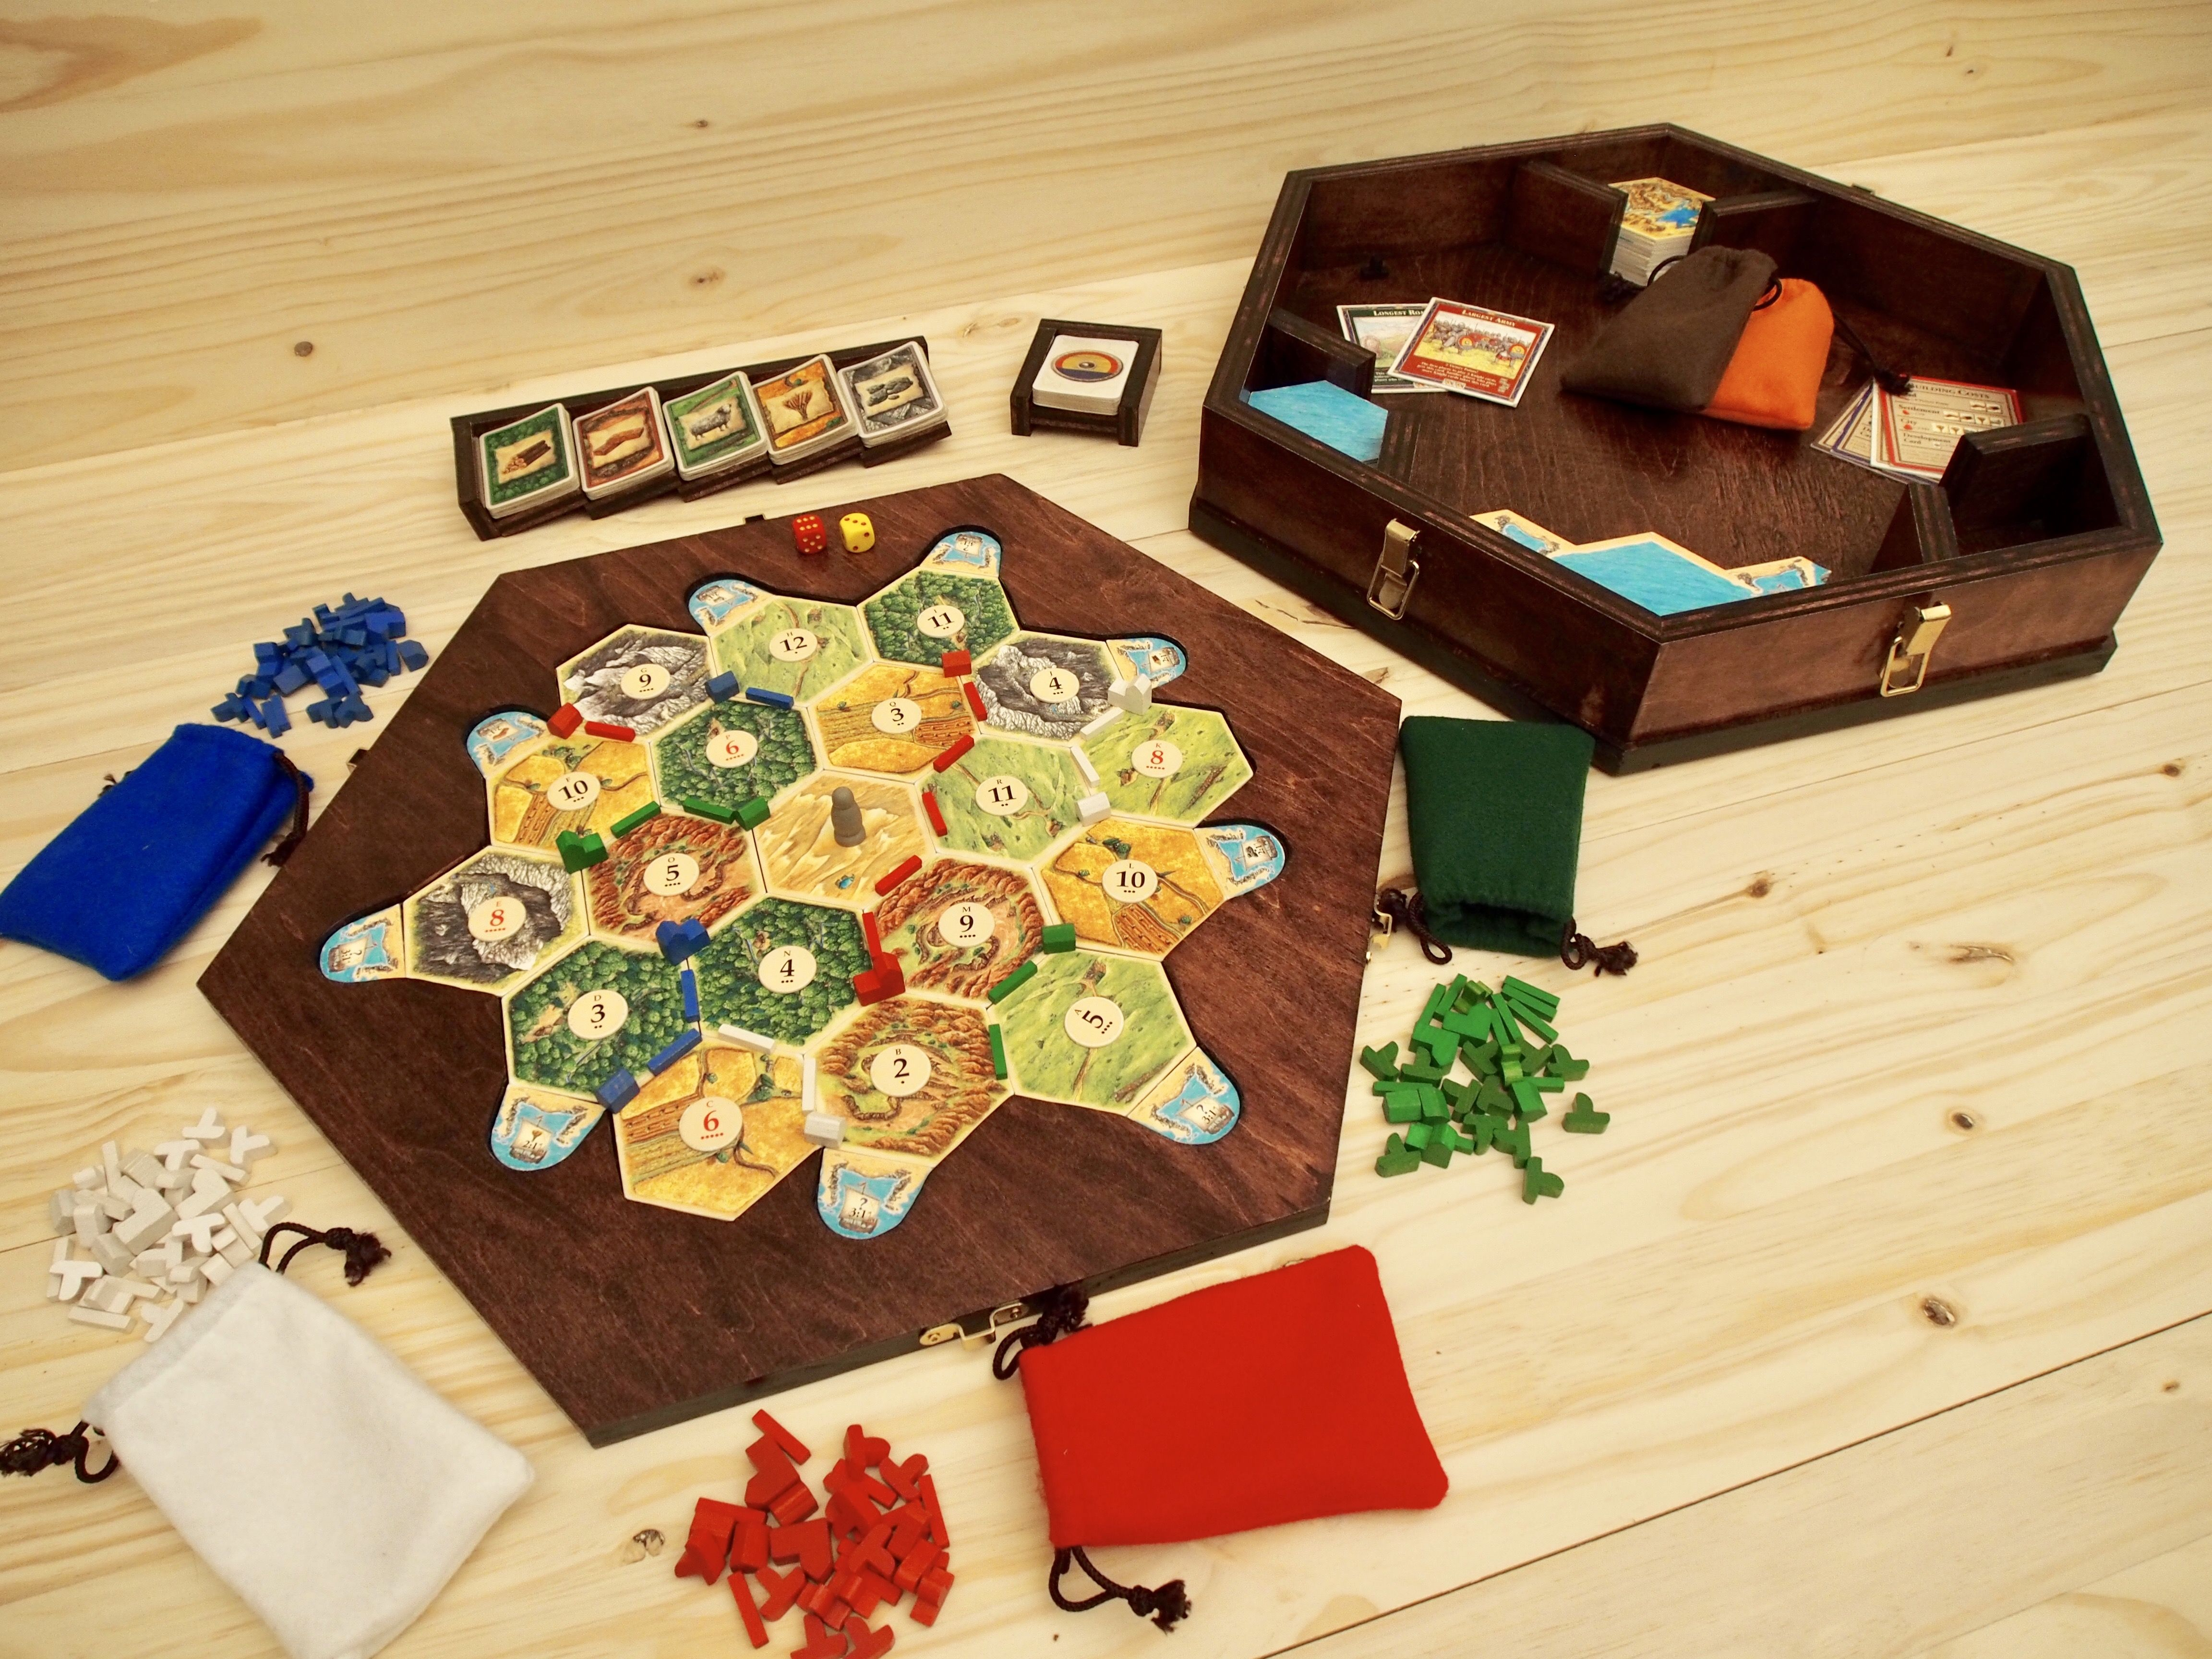 Settlers of Catan Game Board, Storage Unit and Card